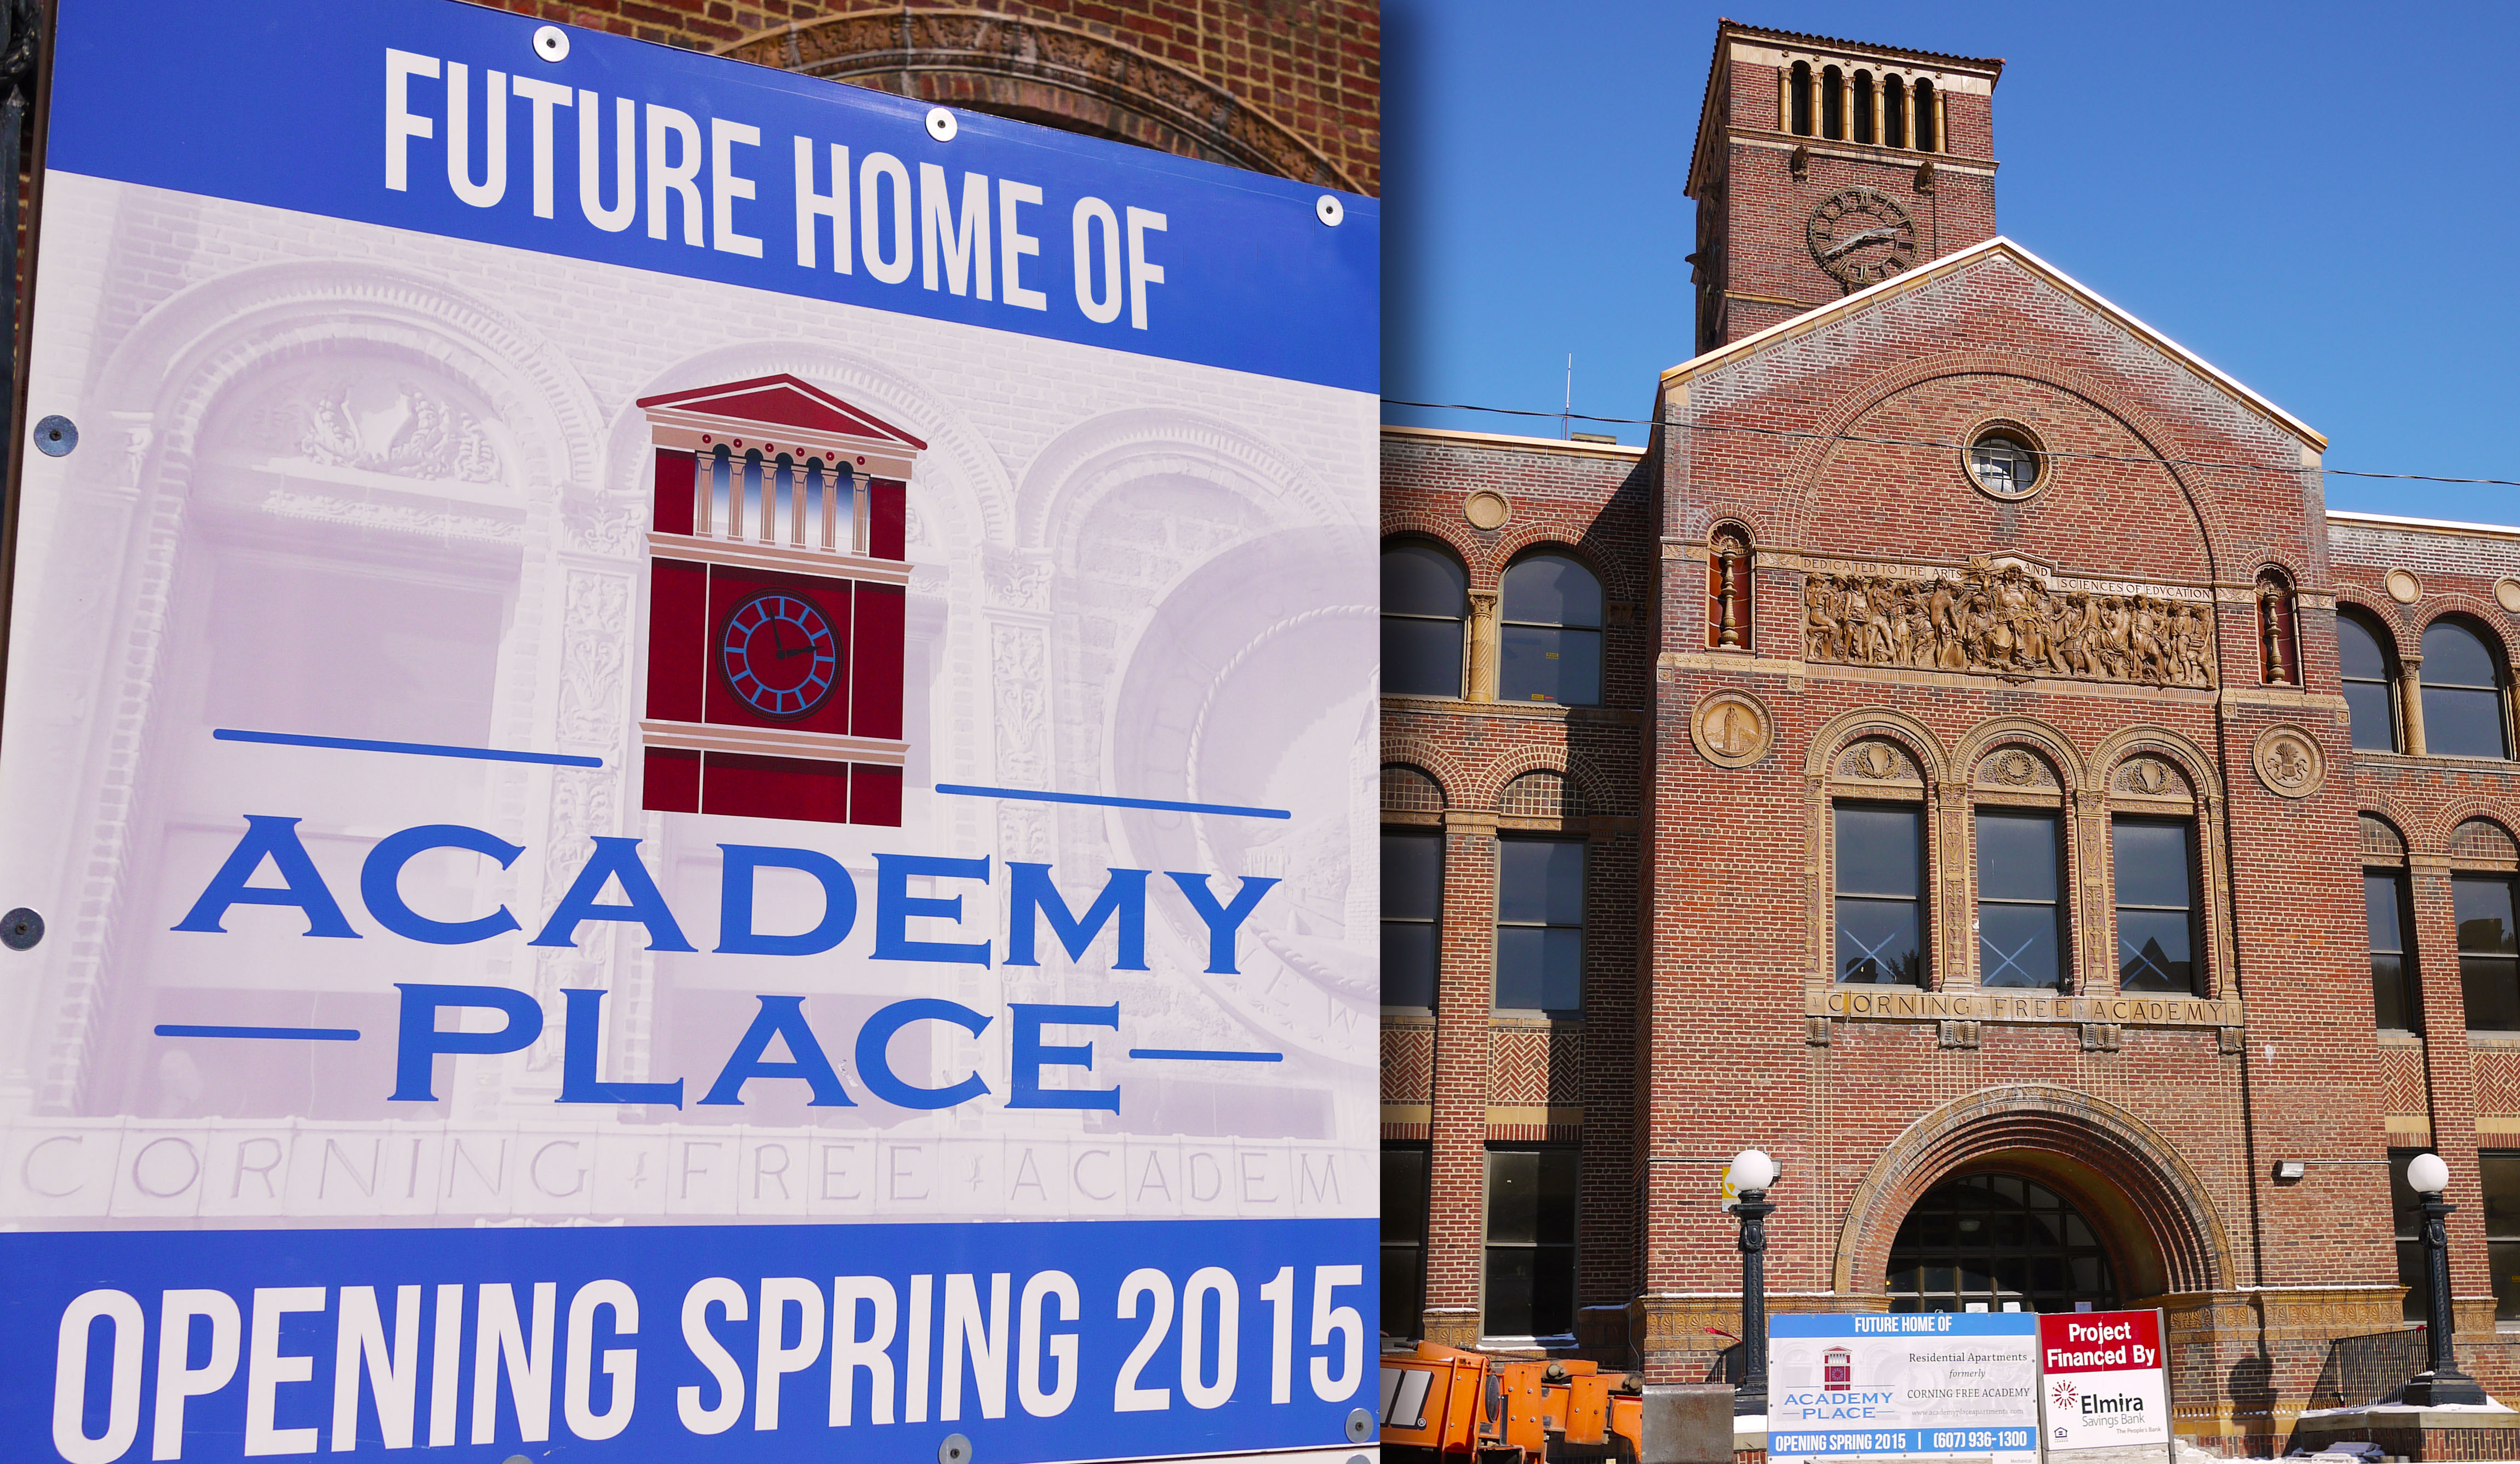 Why Everyone in Corning Should Care About Academy Place